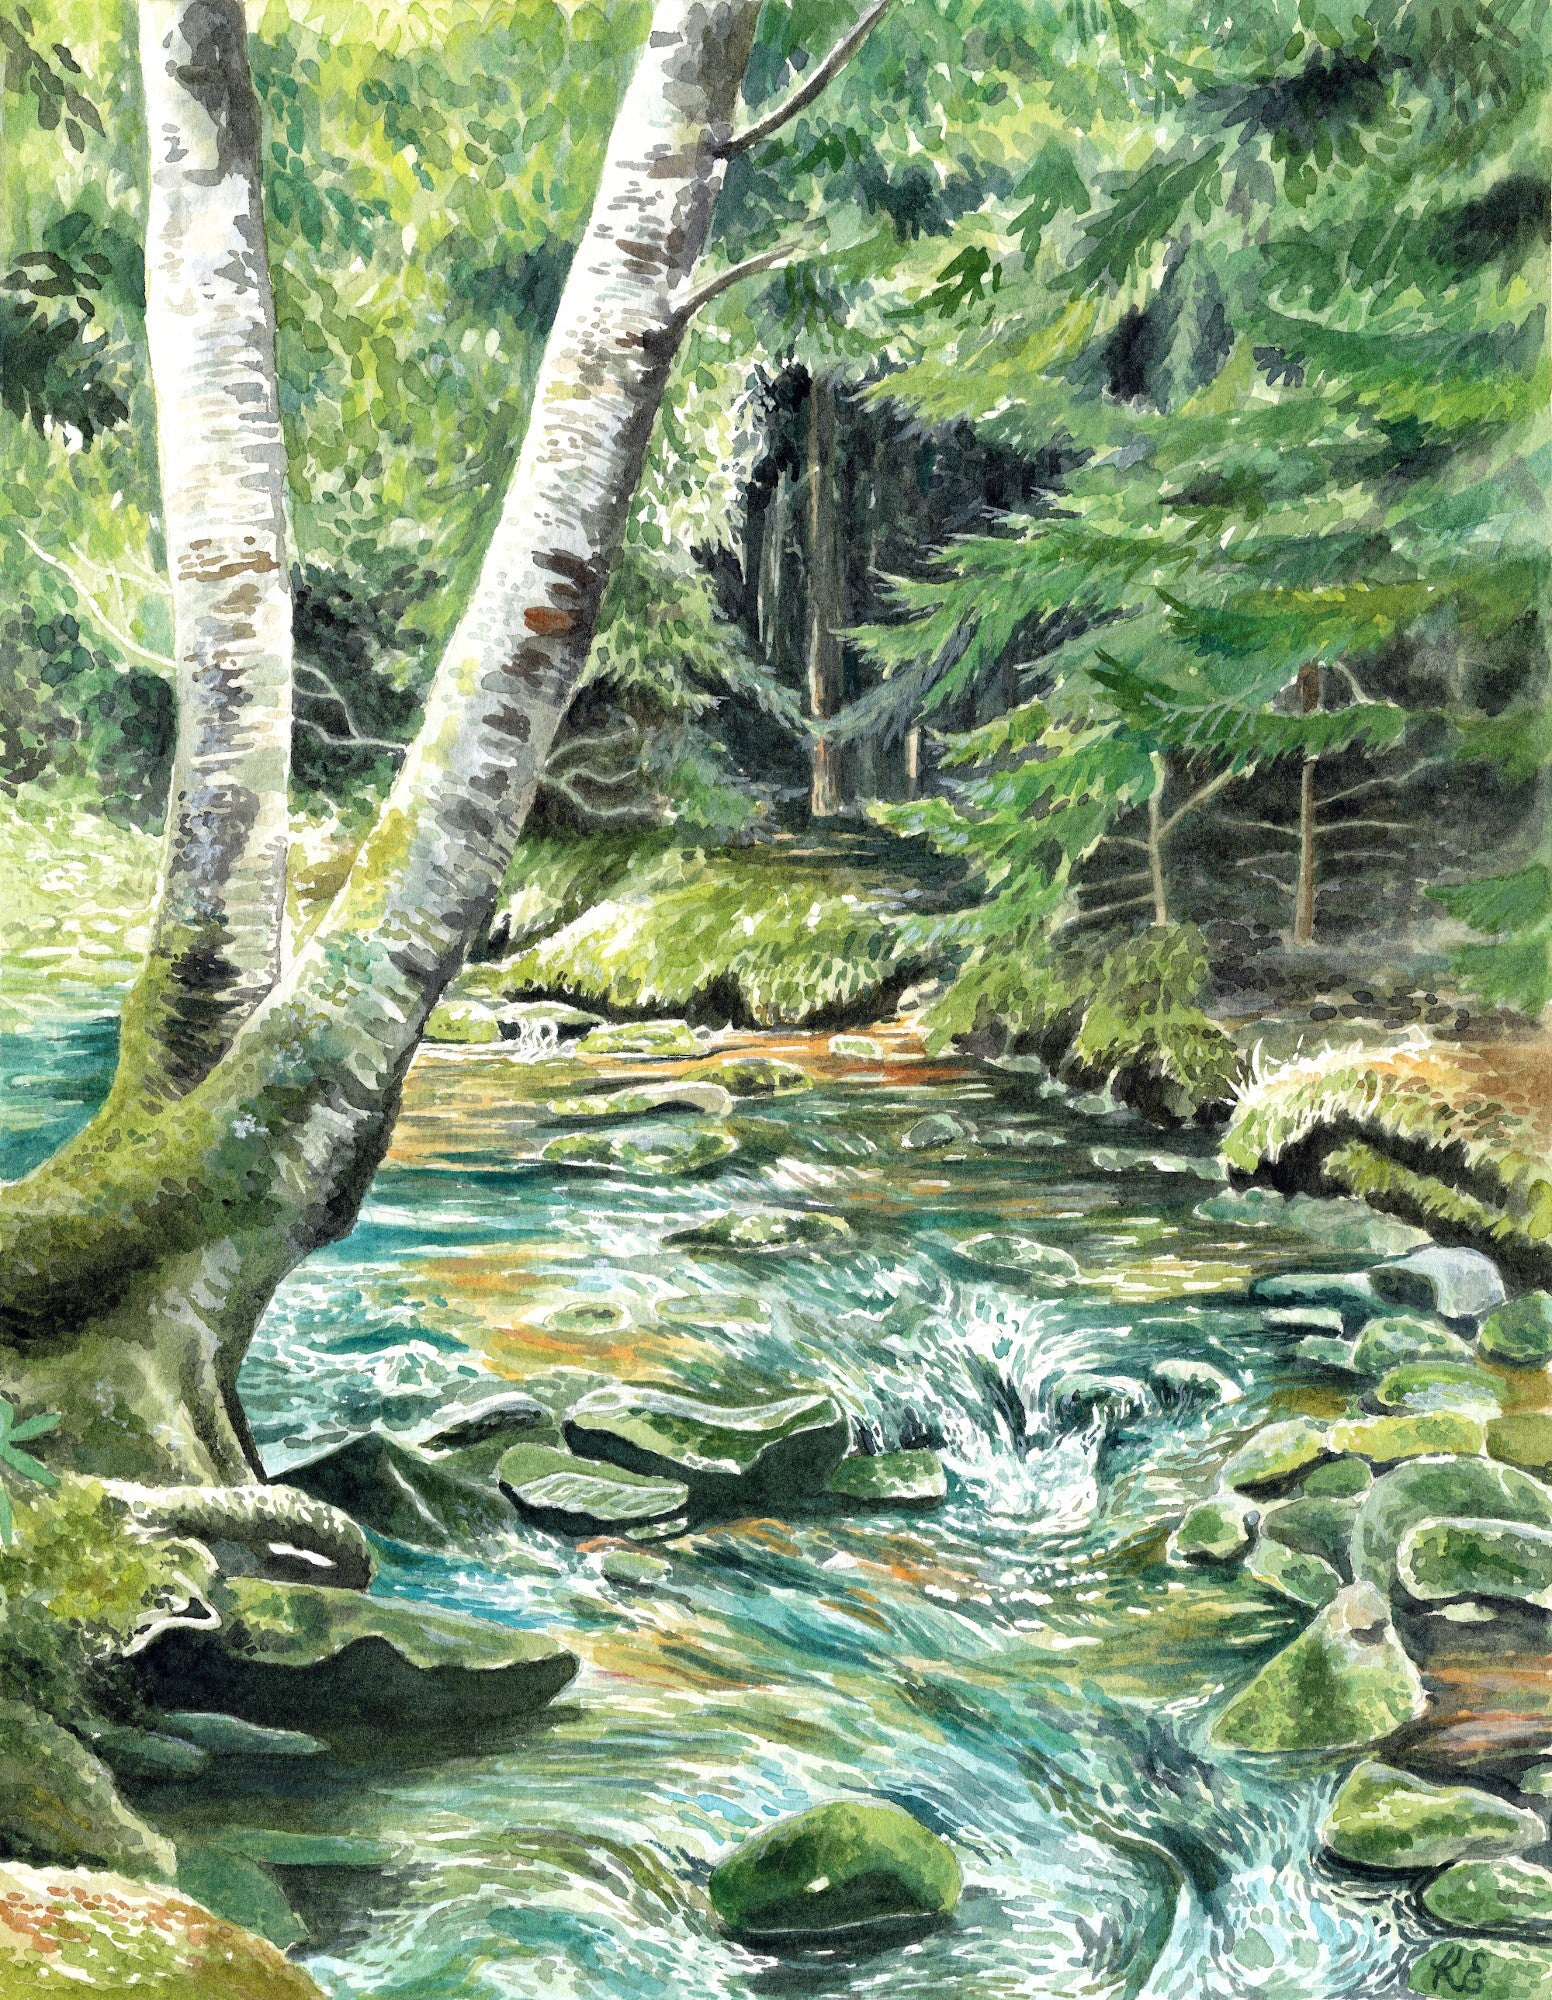 Woodland Serenity - Original Watercolor Painting - Everhard Designs Nature Art